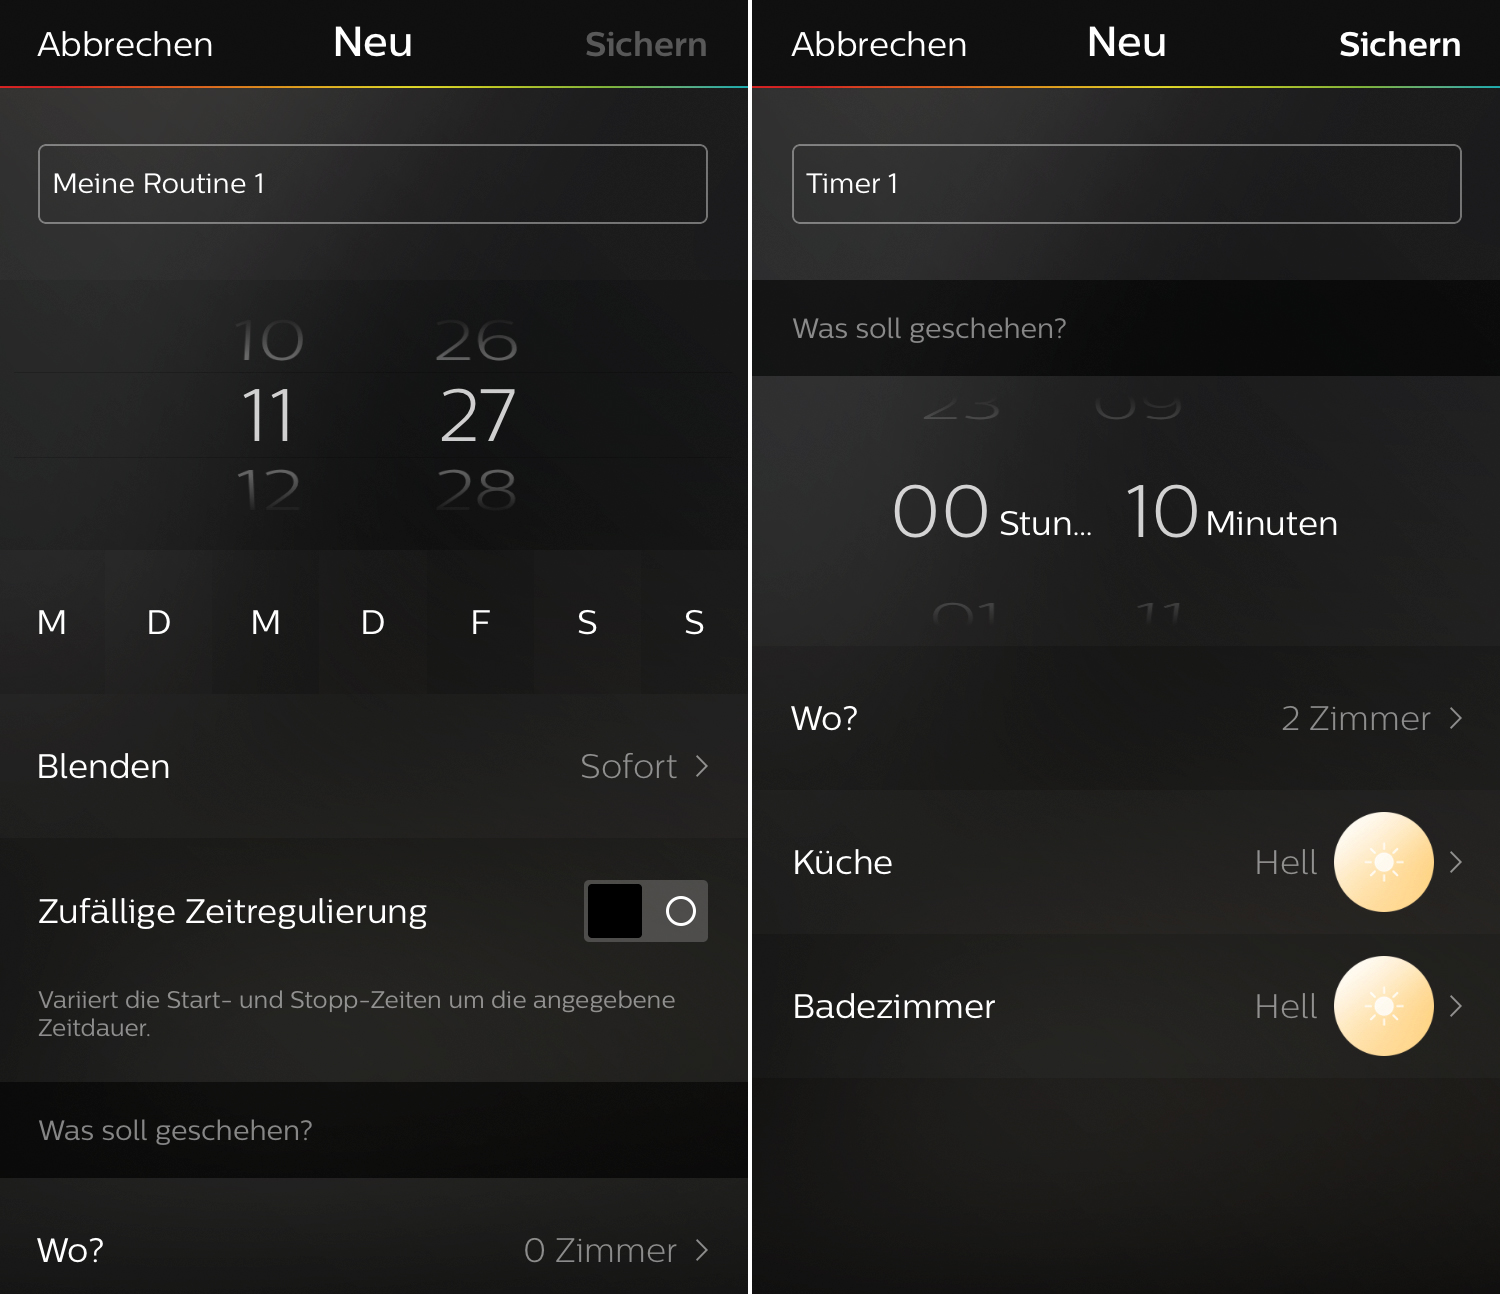 philips hue jetzt mit timern schlauen routinen und erinnerungen iphone. Black Bedroom Furniture Sets. Home Design Ideas